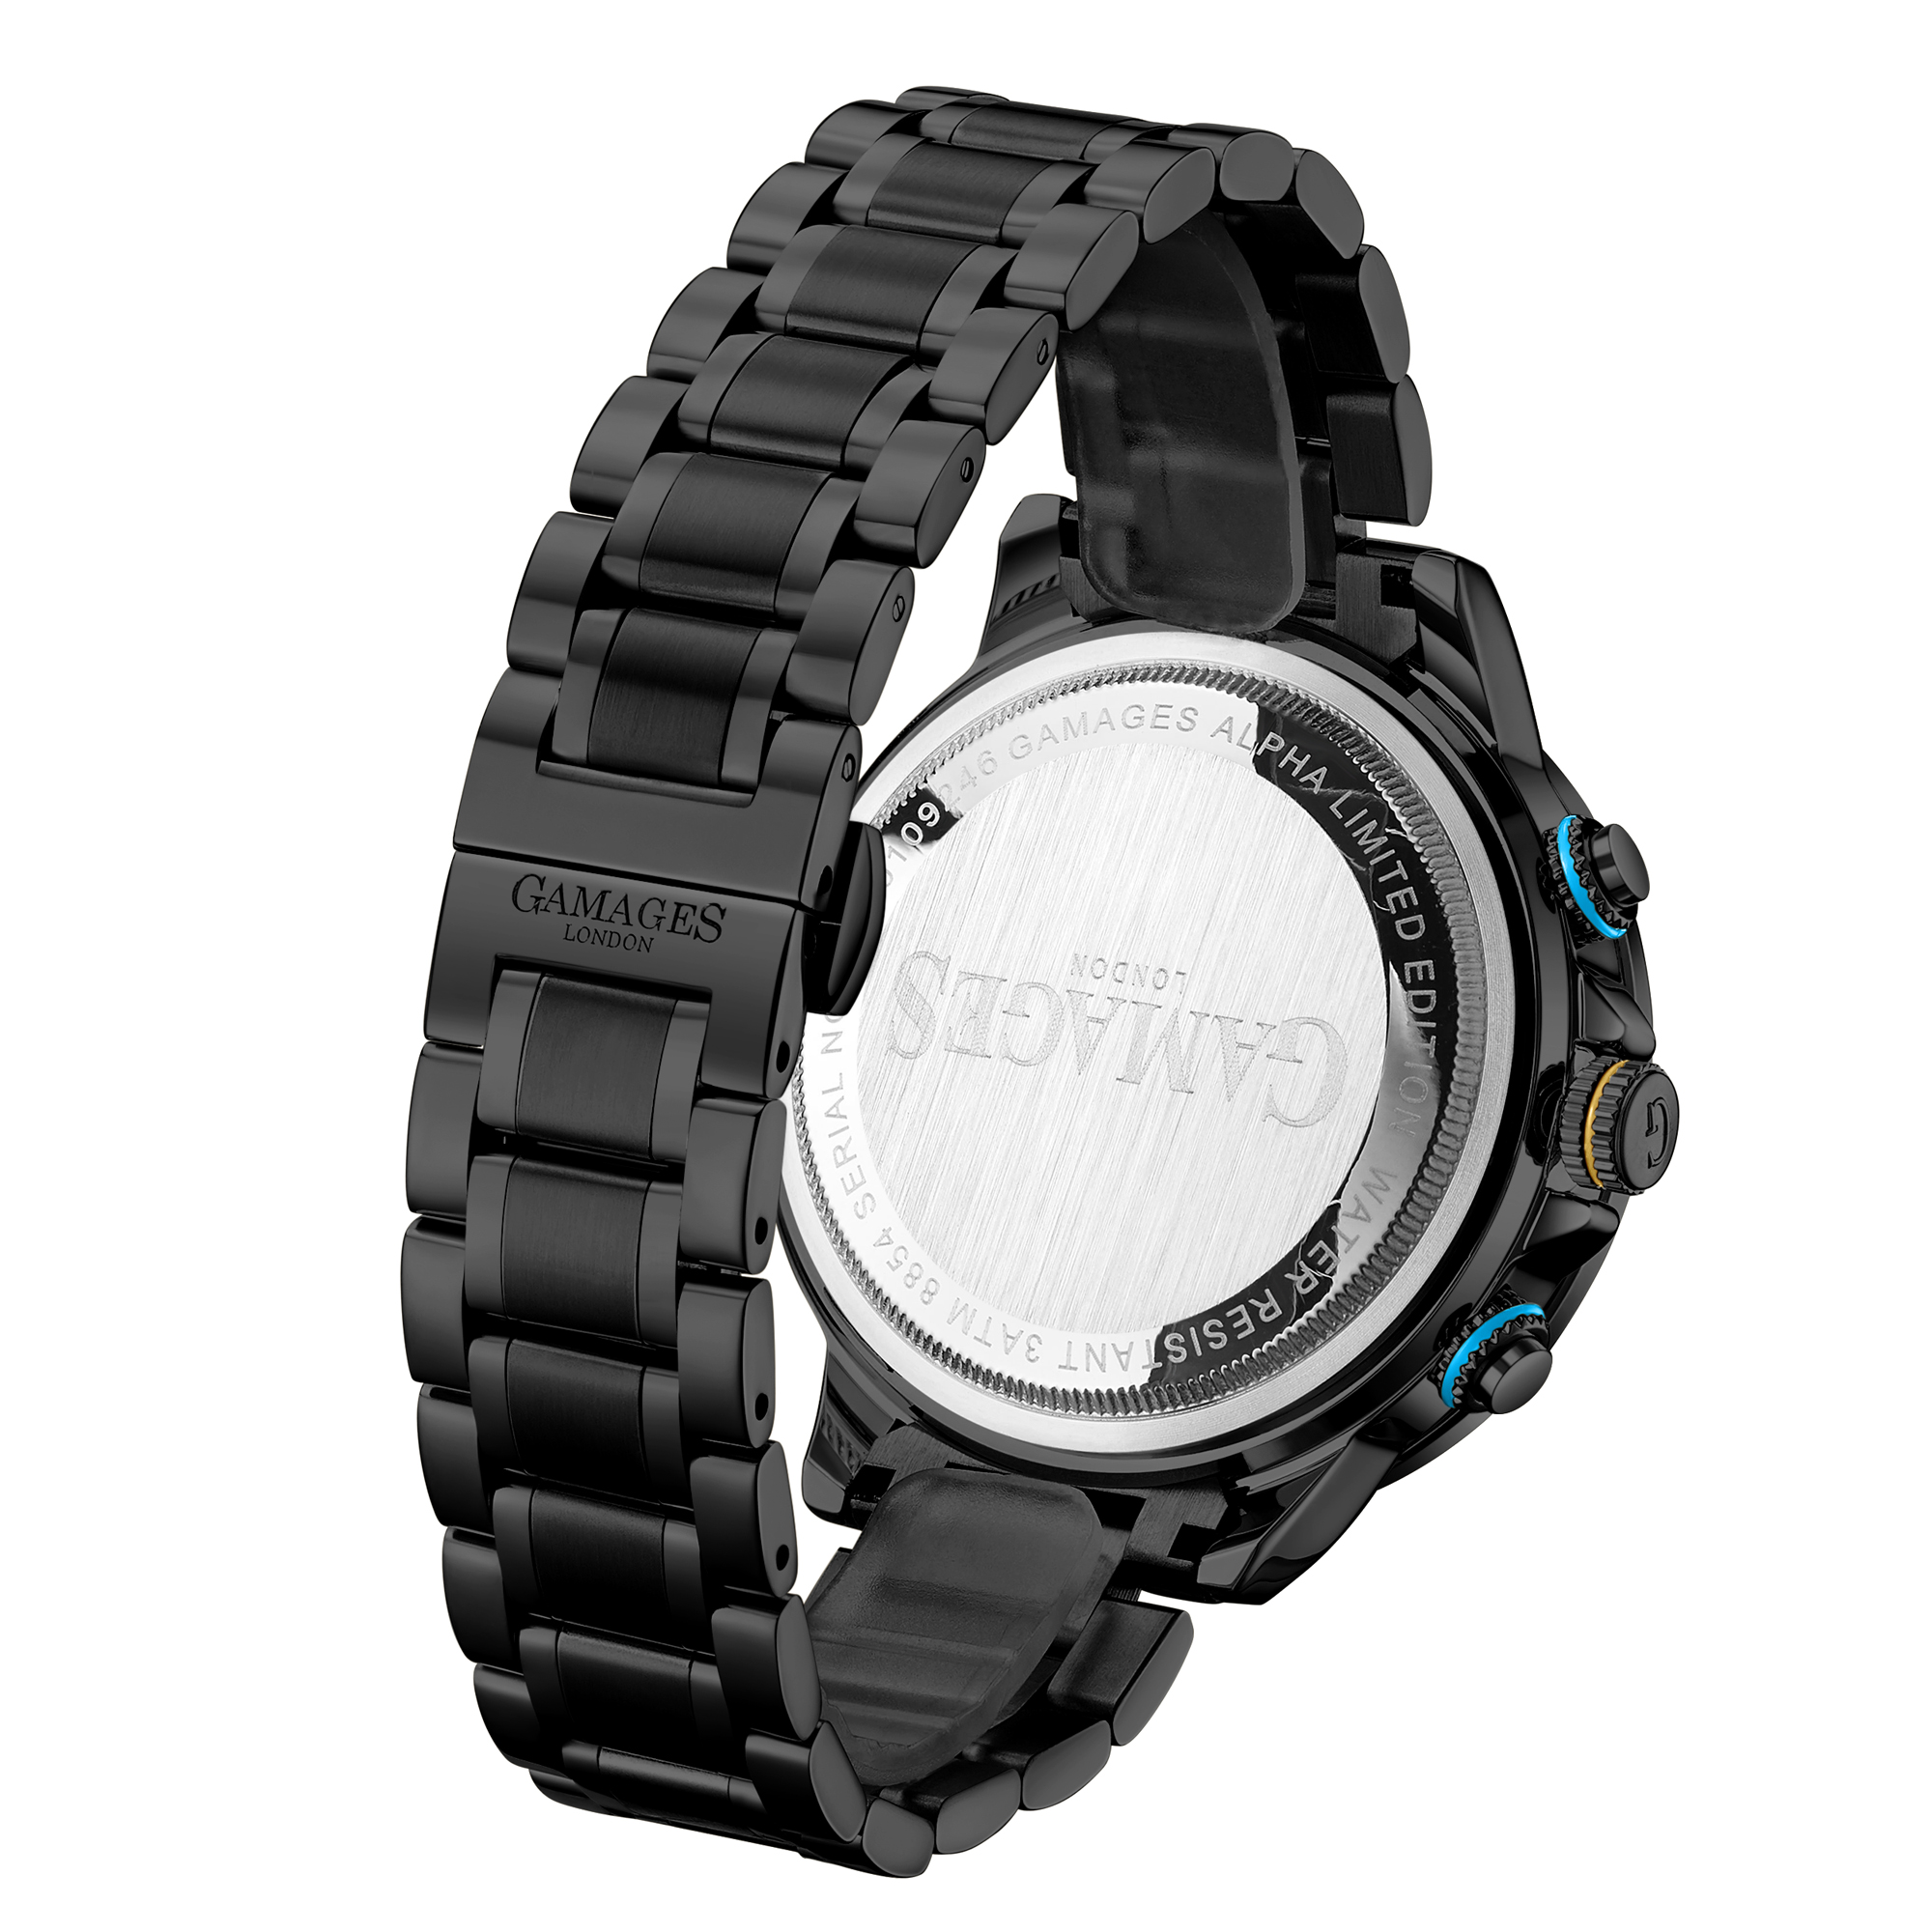 Ltd Edition Hand Assembled Gamages Alpha Automatic Black IP – 5 Year Warranty & Free Delivery - Image 2 of 5